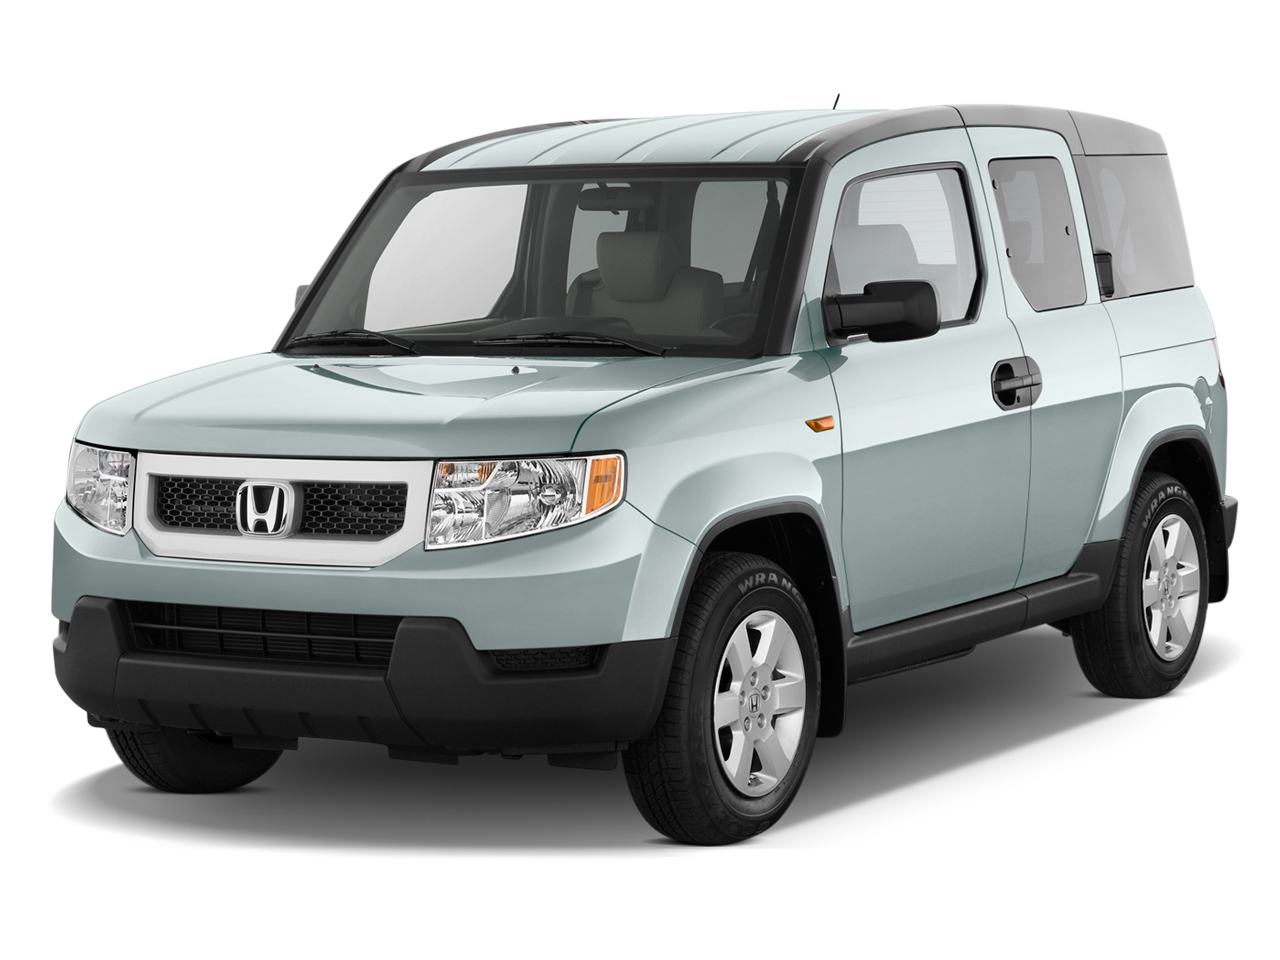 New and used honda element prices photos reviews specs for Honda element dimensions